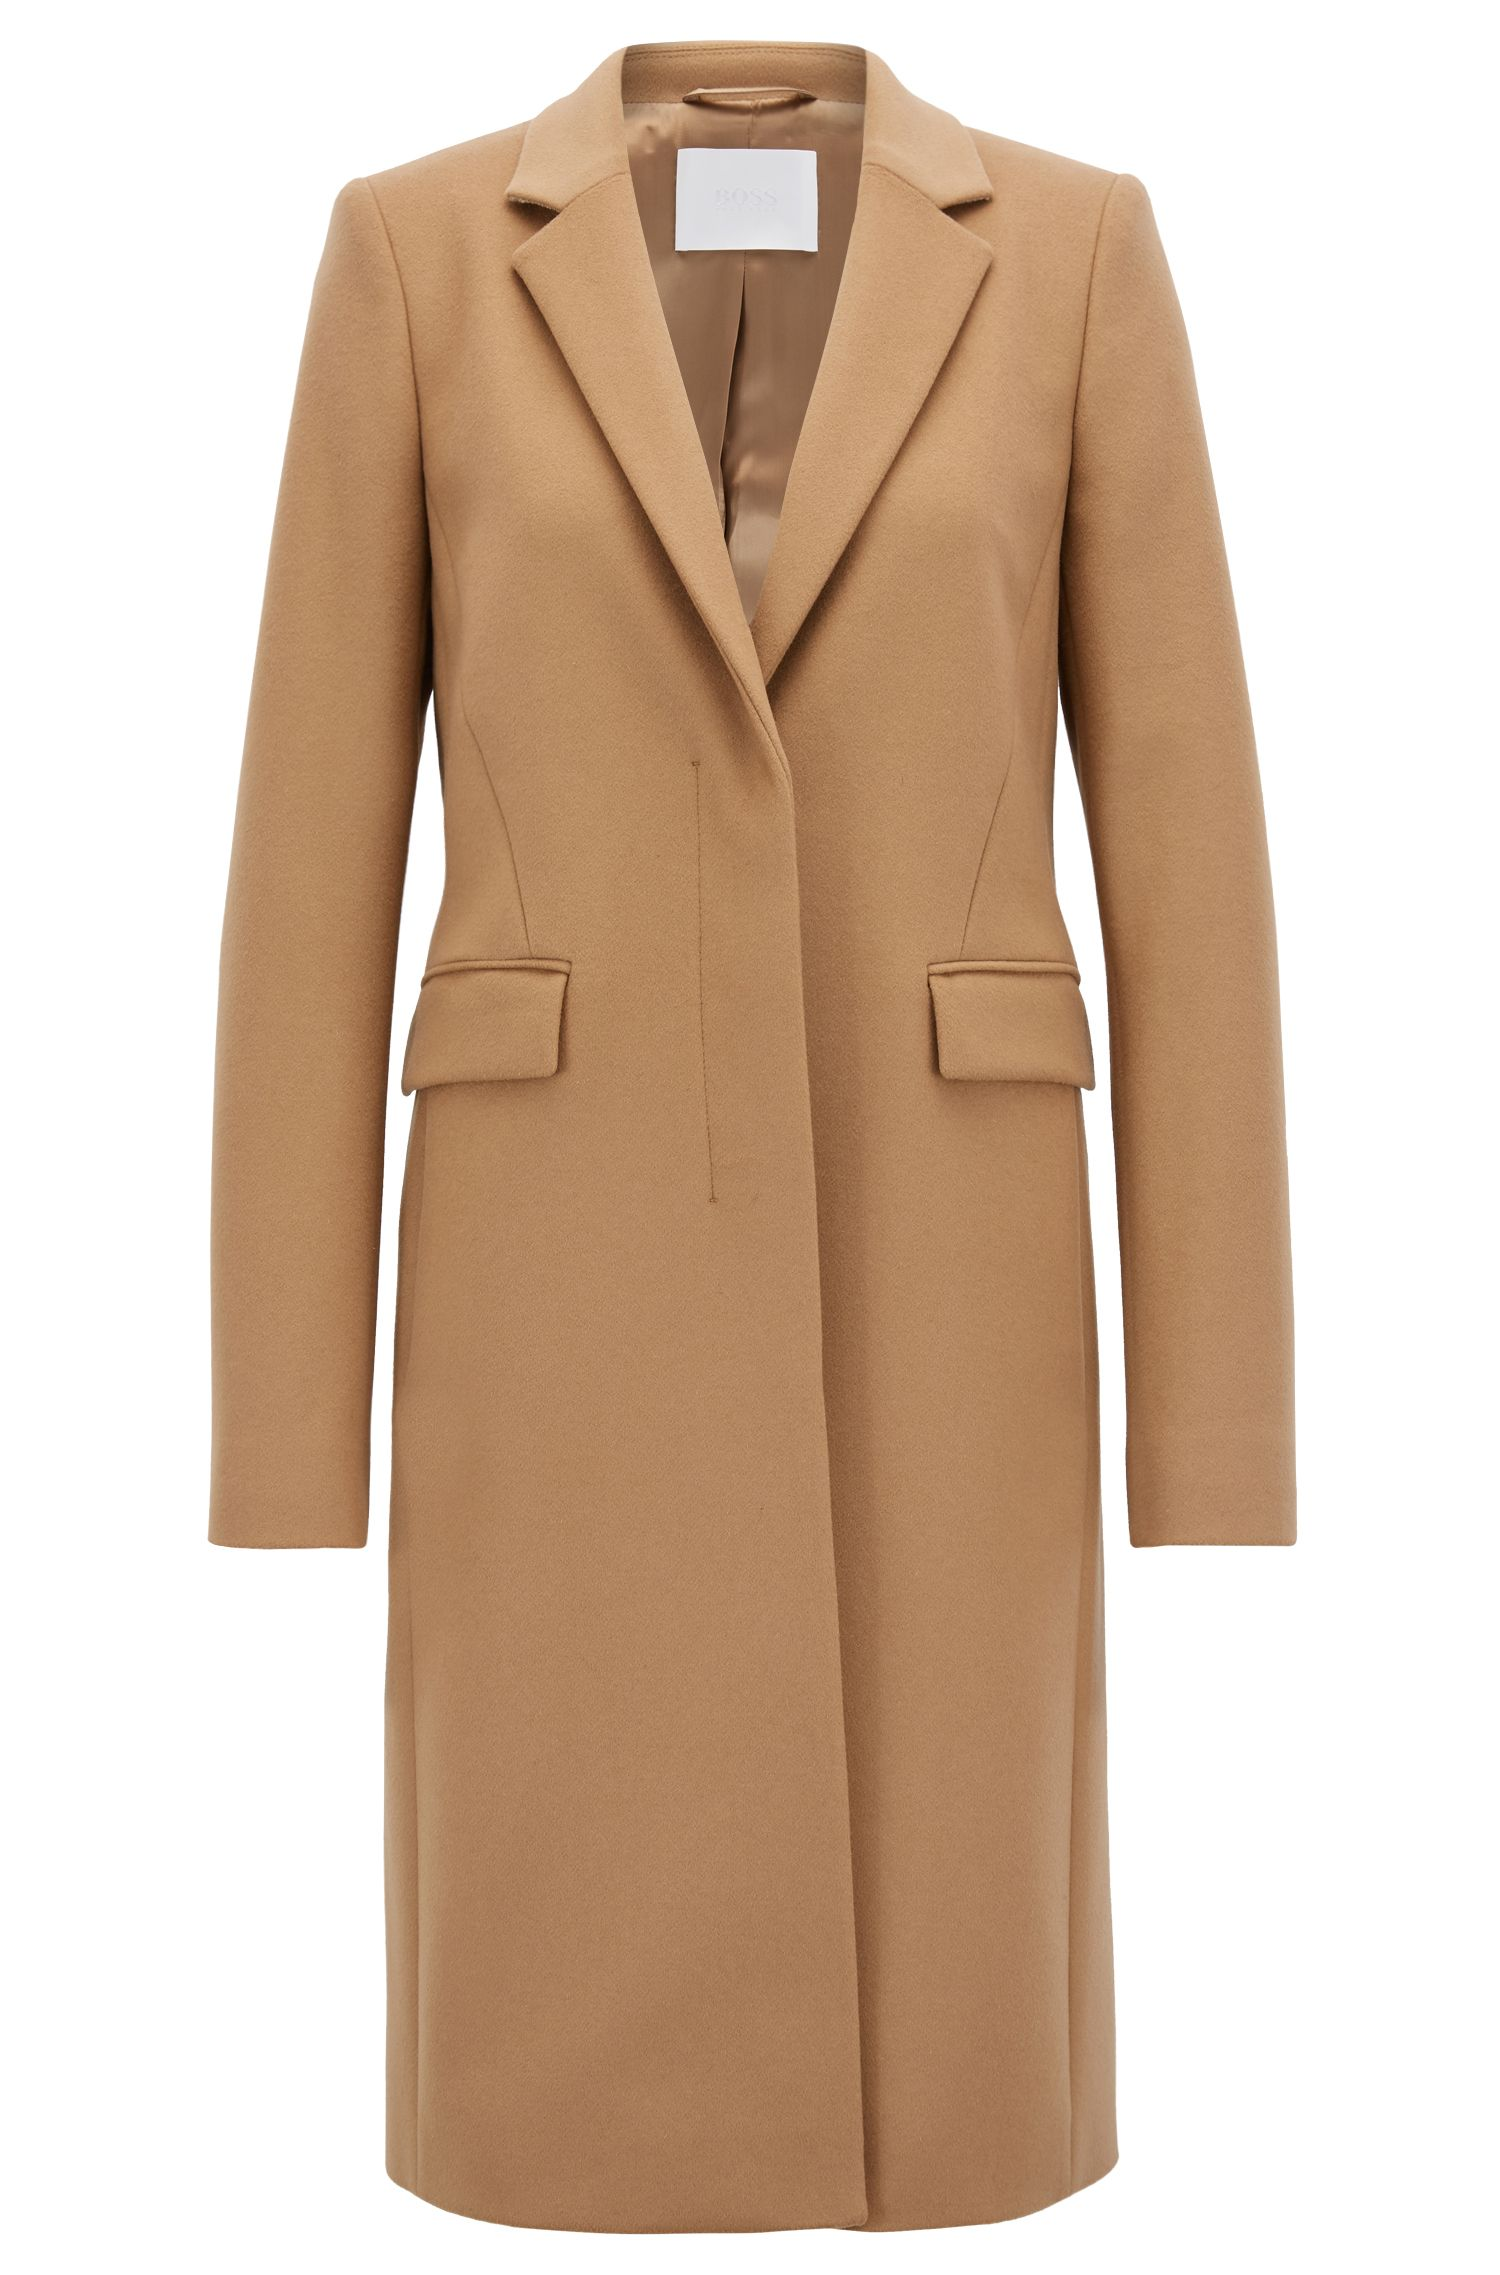 Blazer-style coat in Italian virgin wool and cashmere